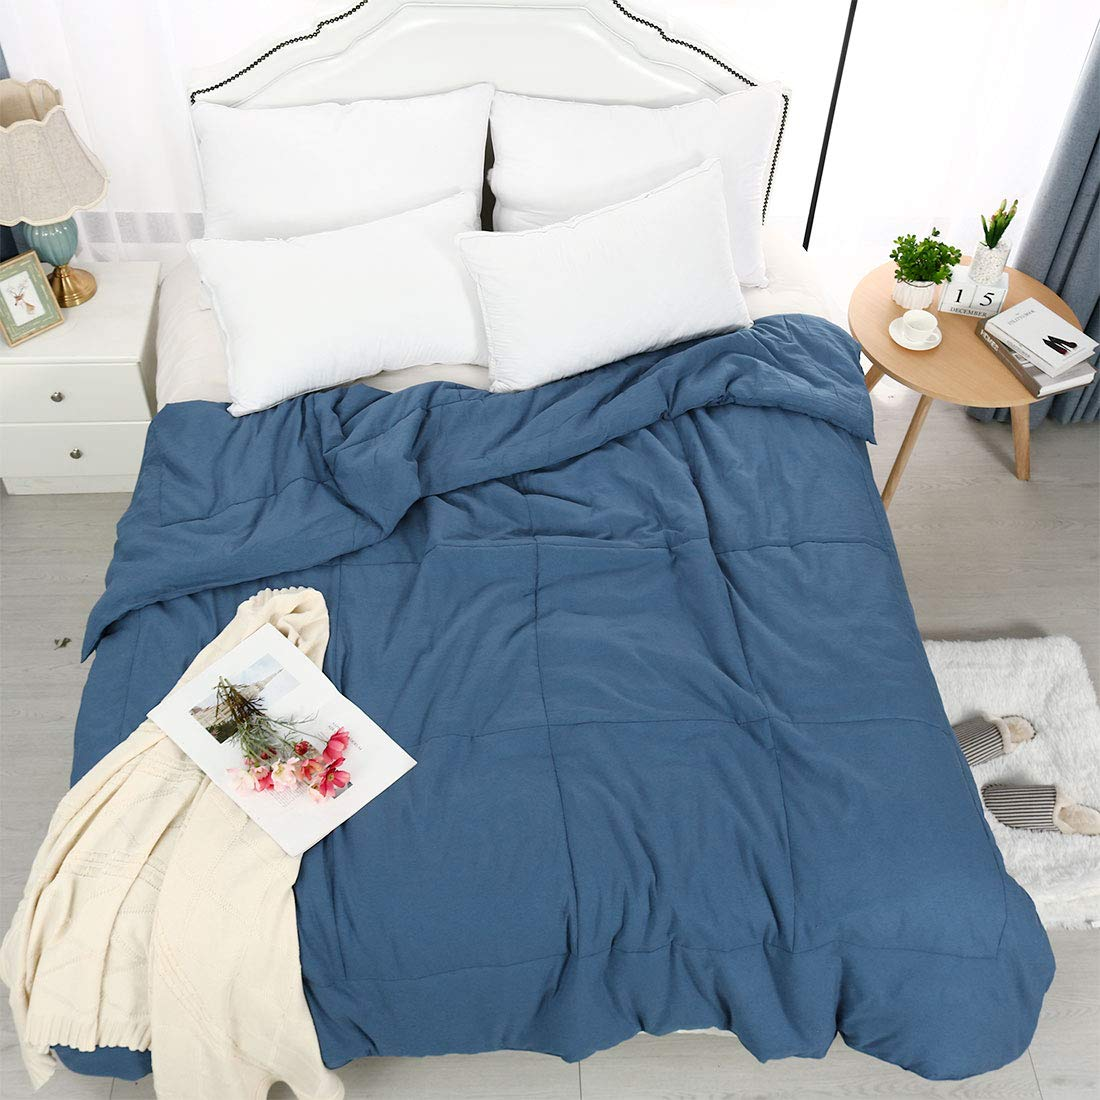 PiccoCasa Twin Blue 100% Washed Cotton Quilted Comforter - Duvet Insert/Stand Along Comforter - Reversible Design - Machine Washable - 68 by 88 inches by PiccoCasa (Image #4)